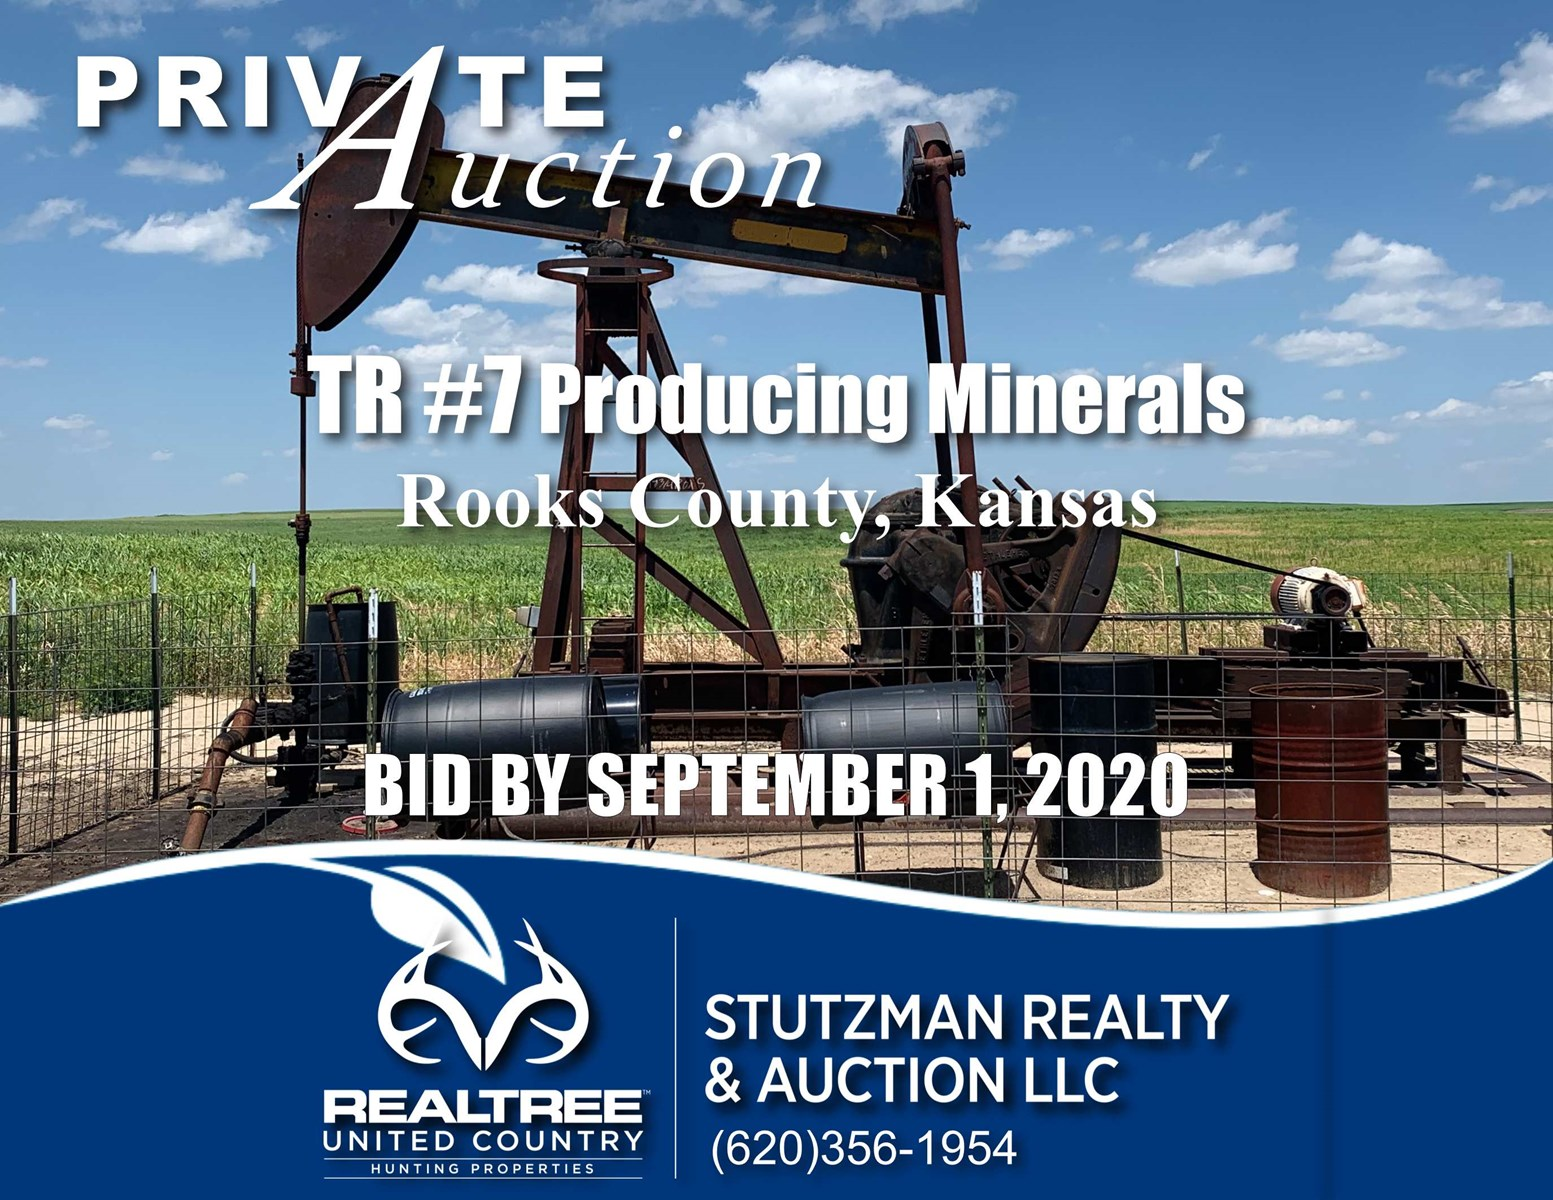 ROOKS COUNTY, KANSAS ~ PRODUCING MINERALS ~ PRIVATE AUCTION